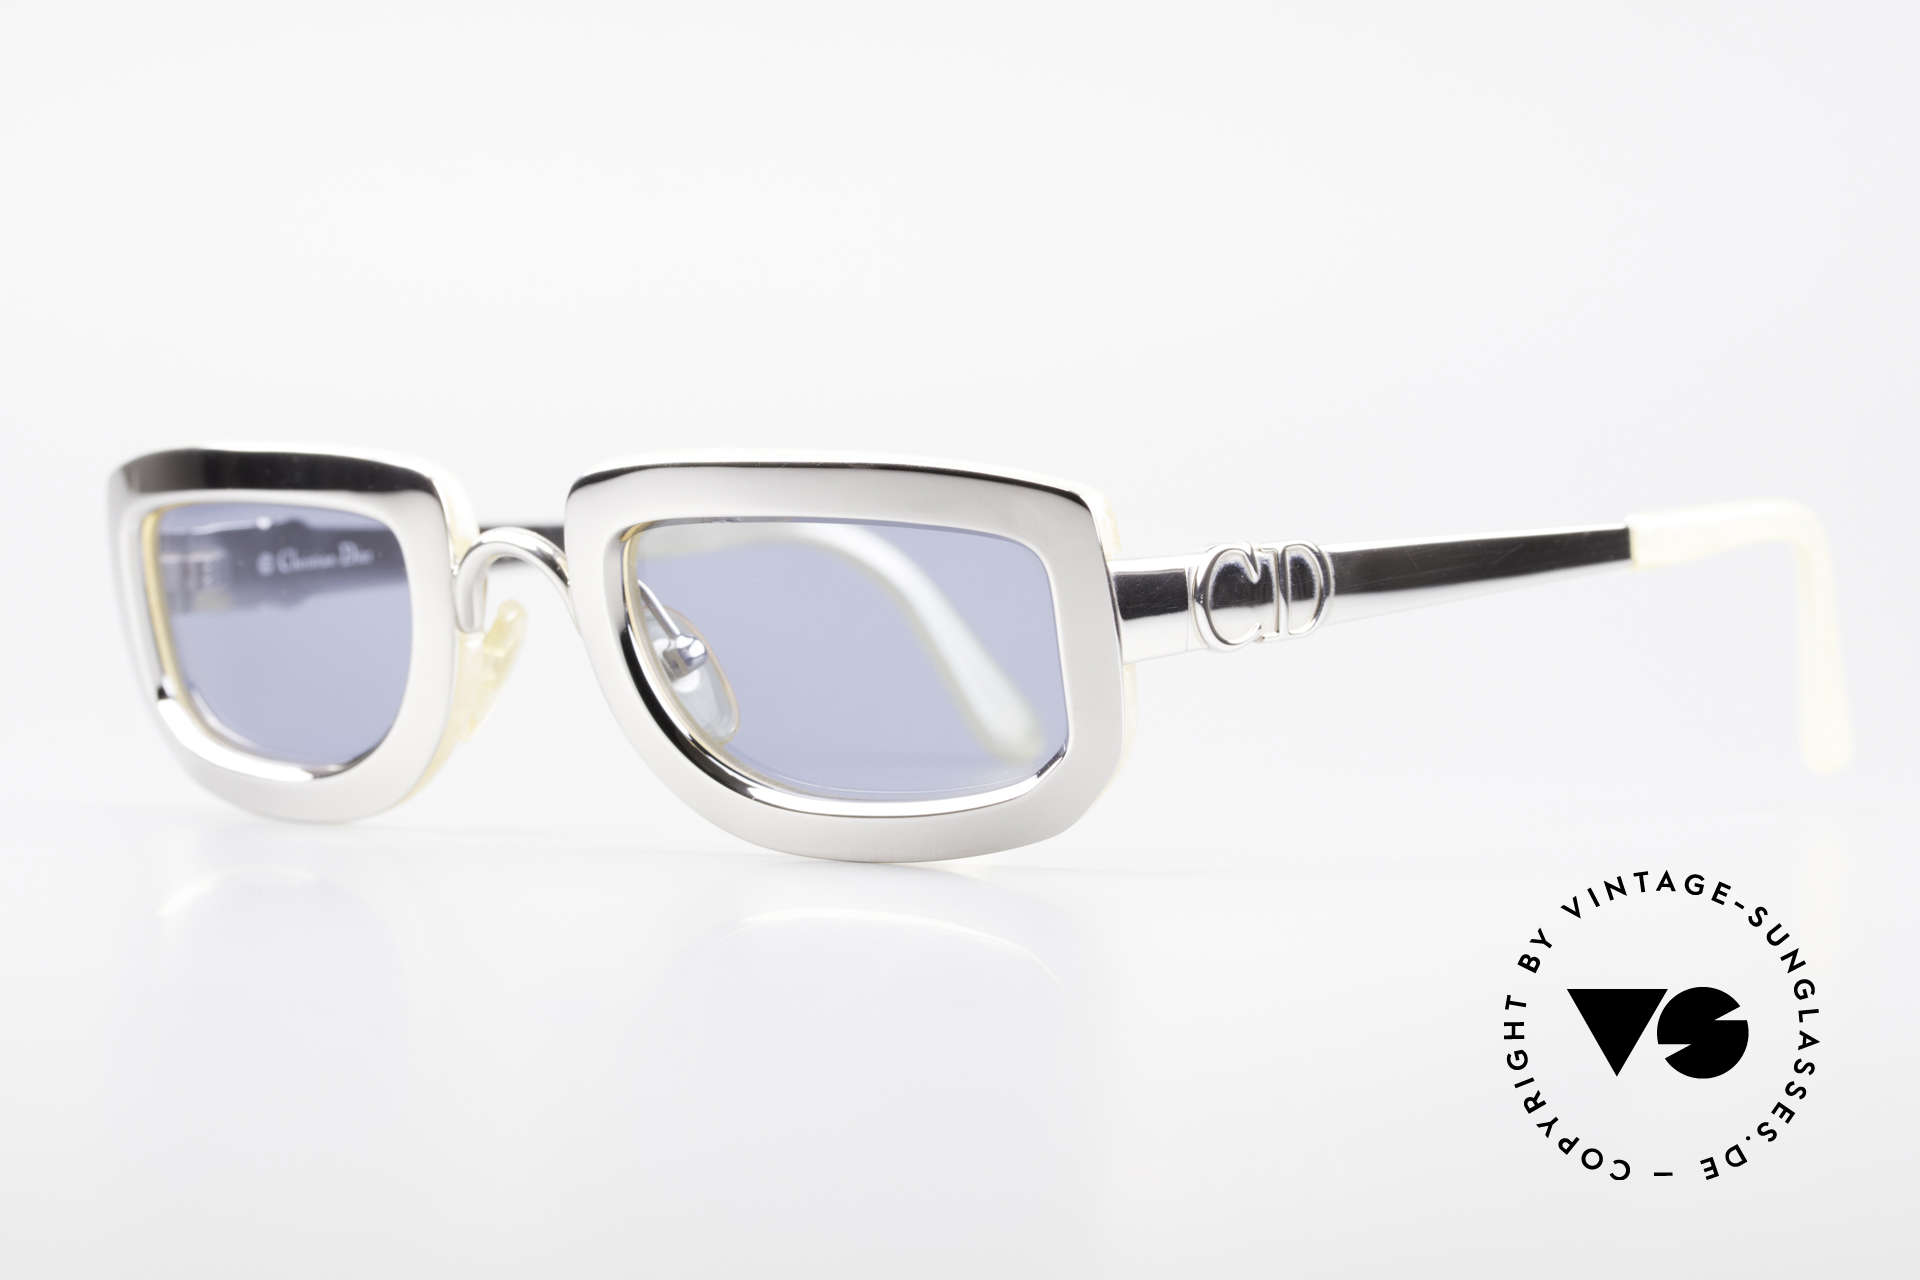 Christian Dior 2972 Designer Shades Silver Nacre, front: silver chrome-plated, backside: mother of pearl, Made for Women